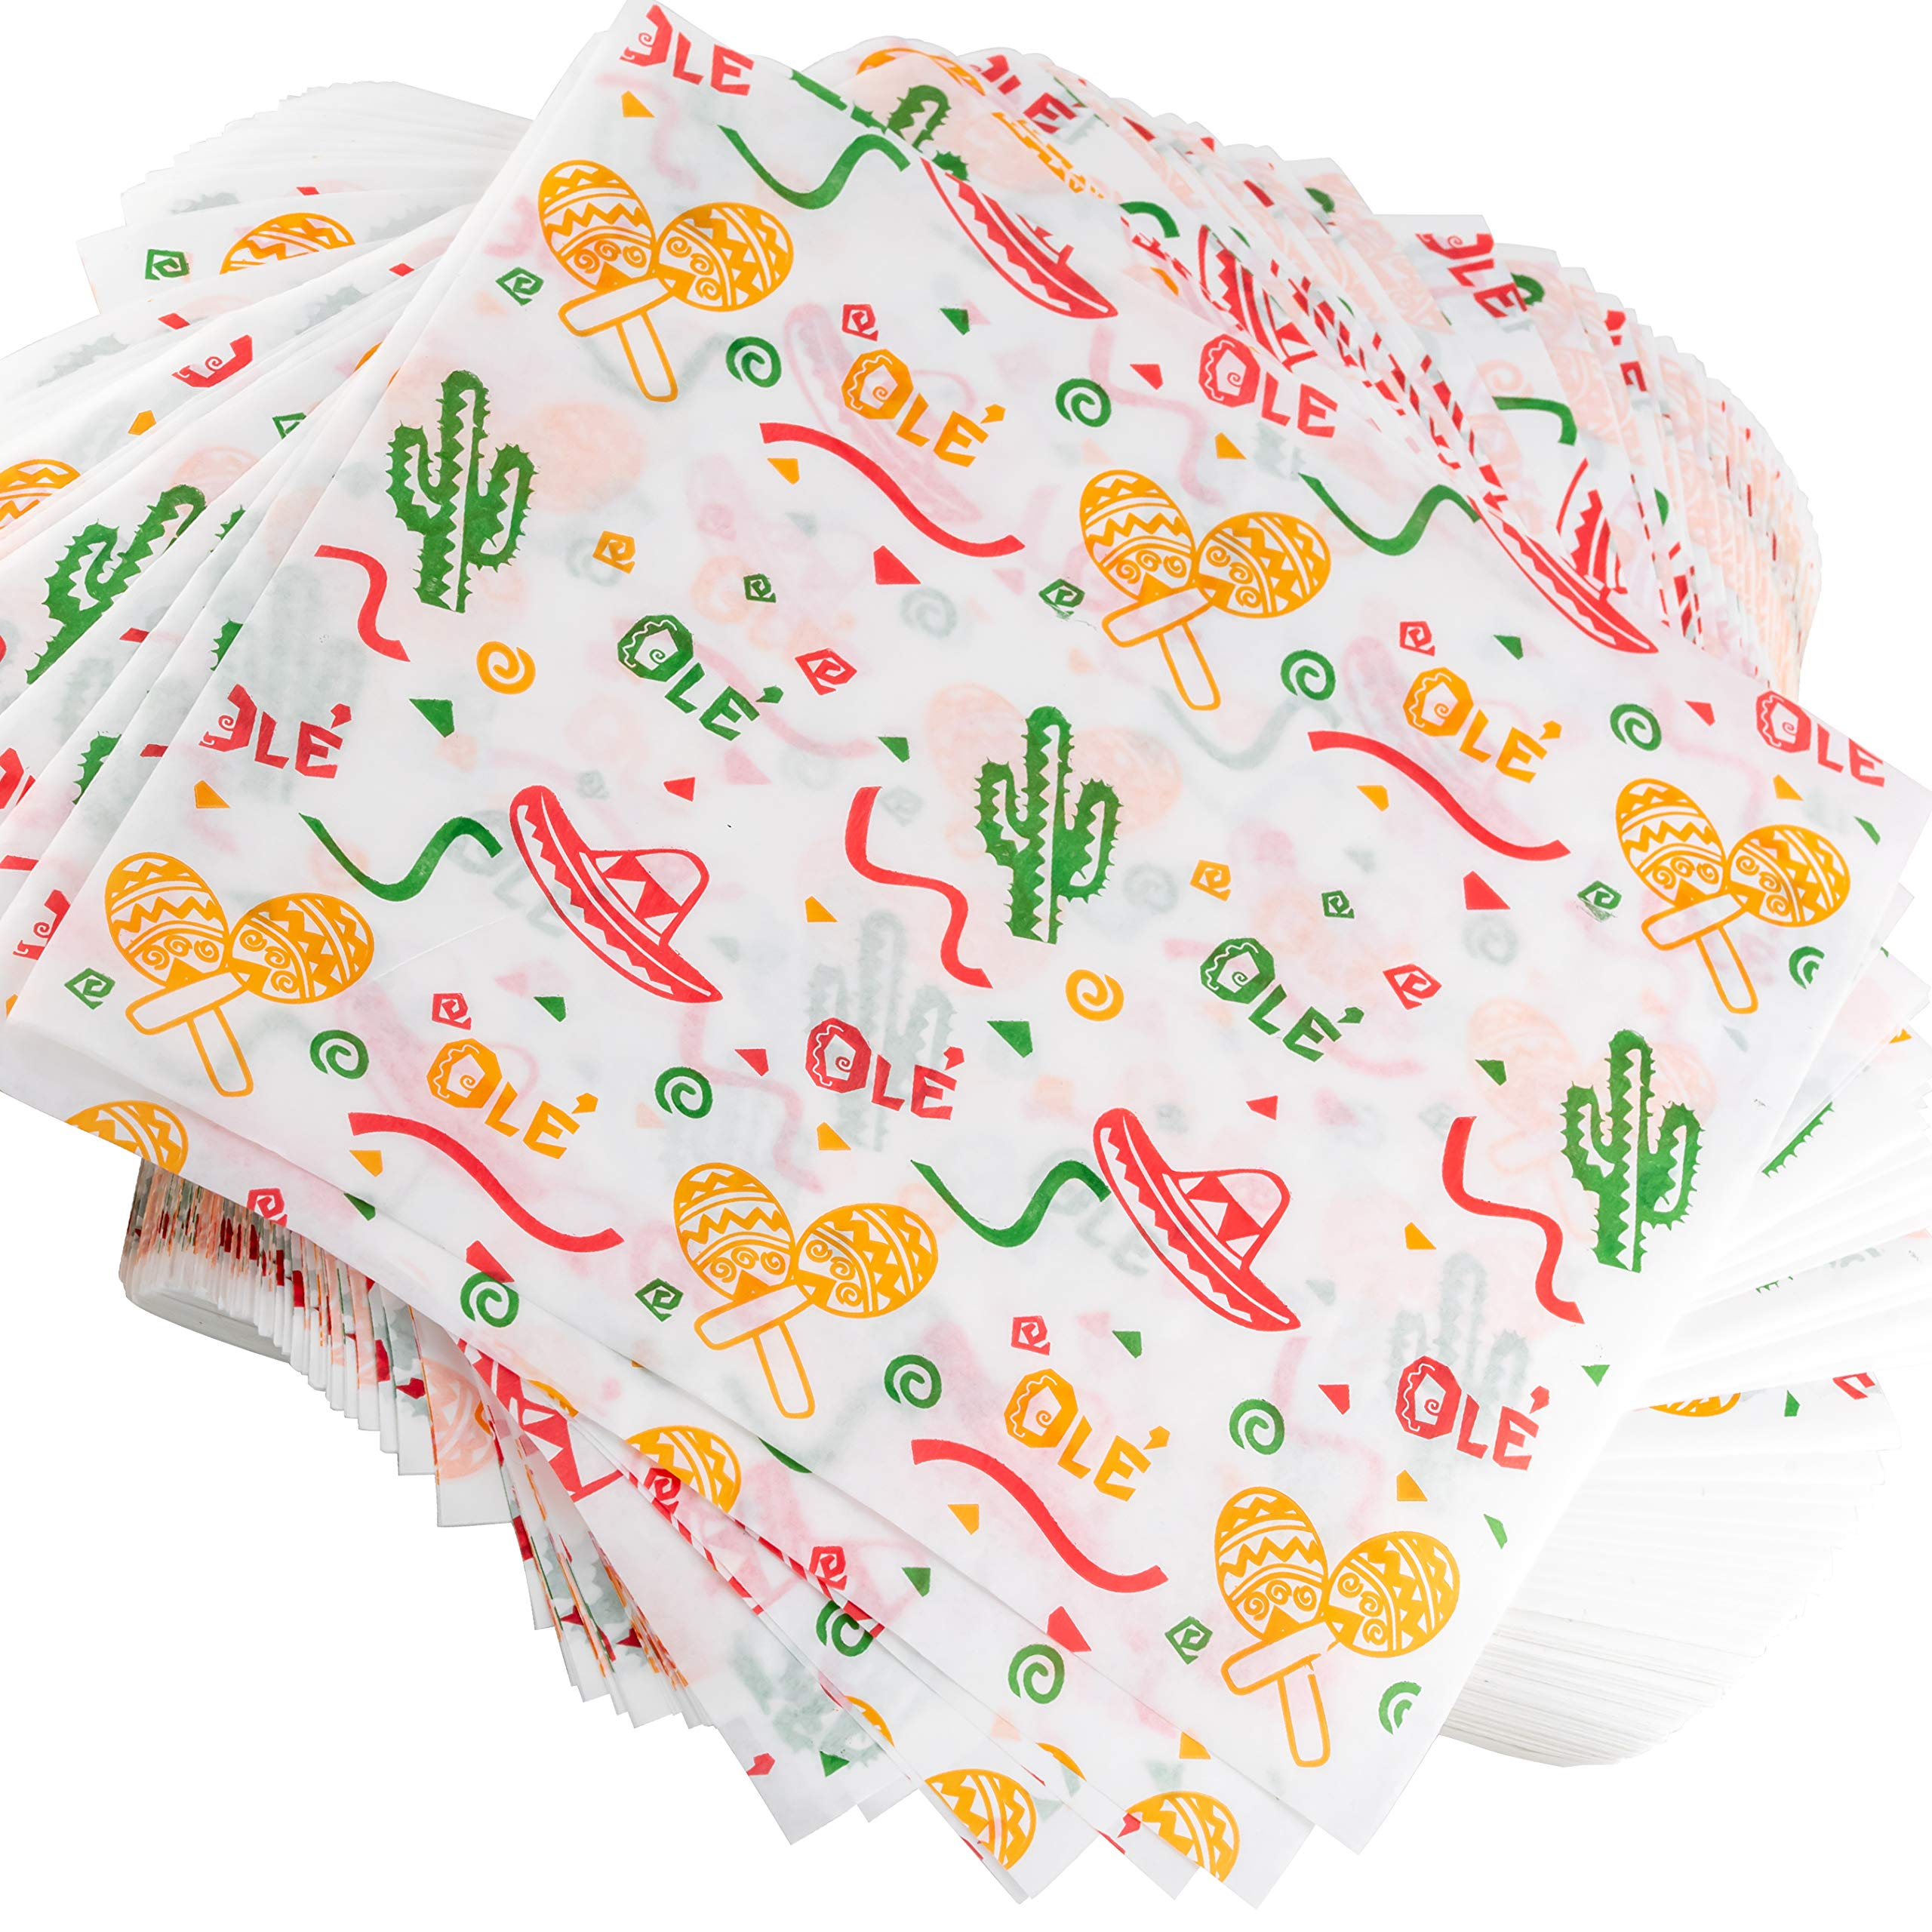 Fun, Fiesta Style 12in Deli Paper 1000 Ct. Greaseproof, Microwave-Safe Mexican Themed Tissue Great for Burrito Wrappers or Nacho Basket Liners. Southwest Party Supplies for Cinco de Mayo Celebration